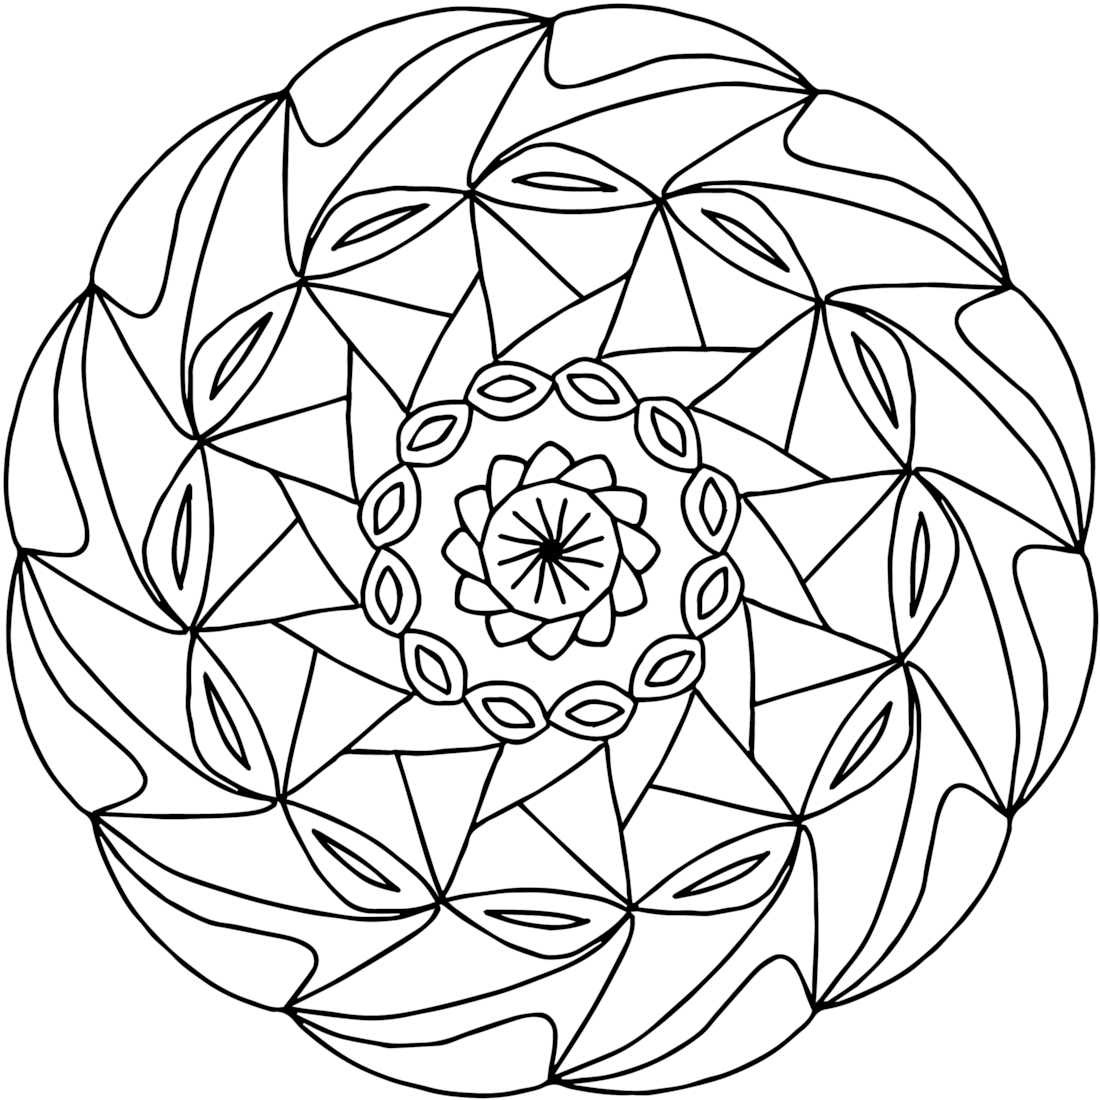 pinwheel a free printable coloring page one of 100 https